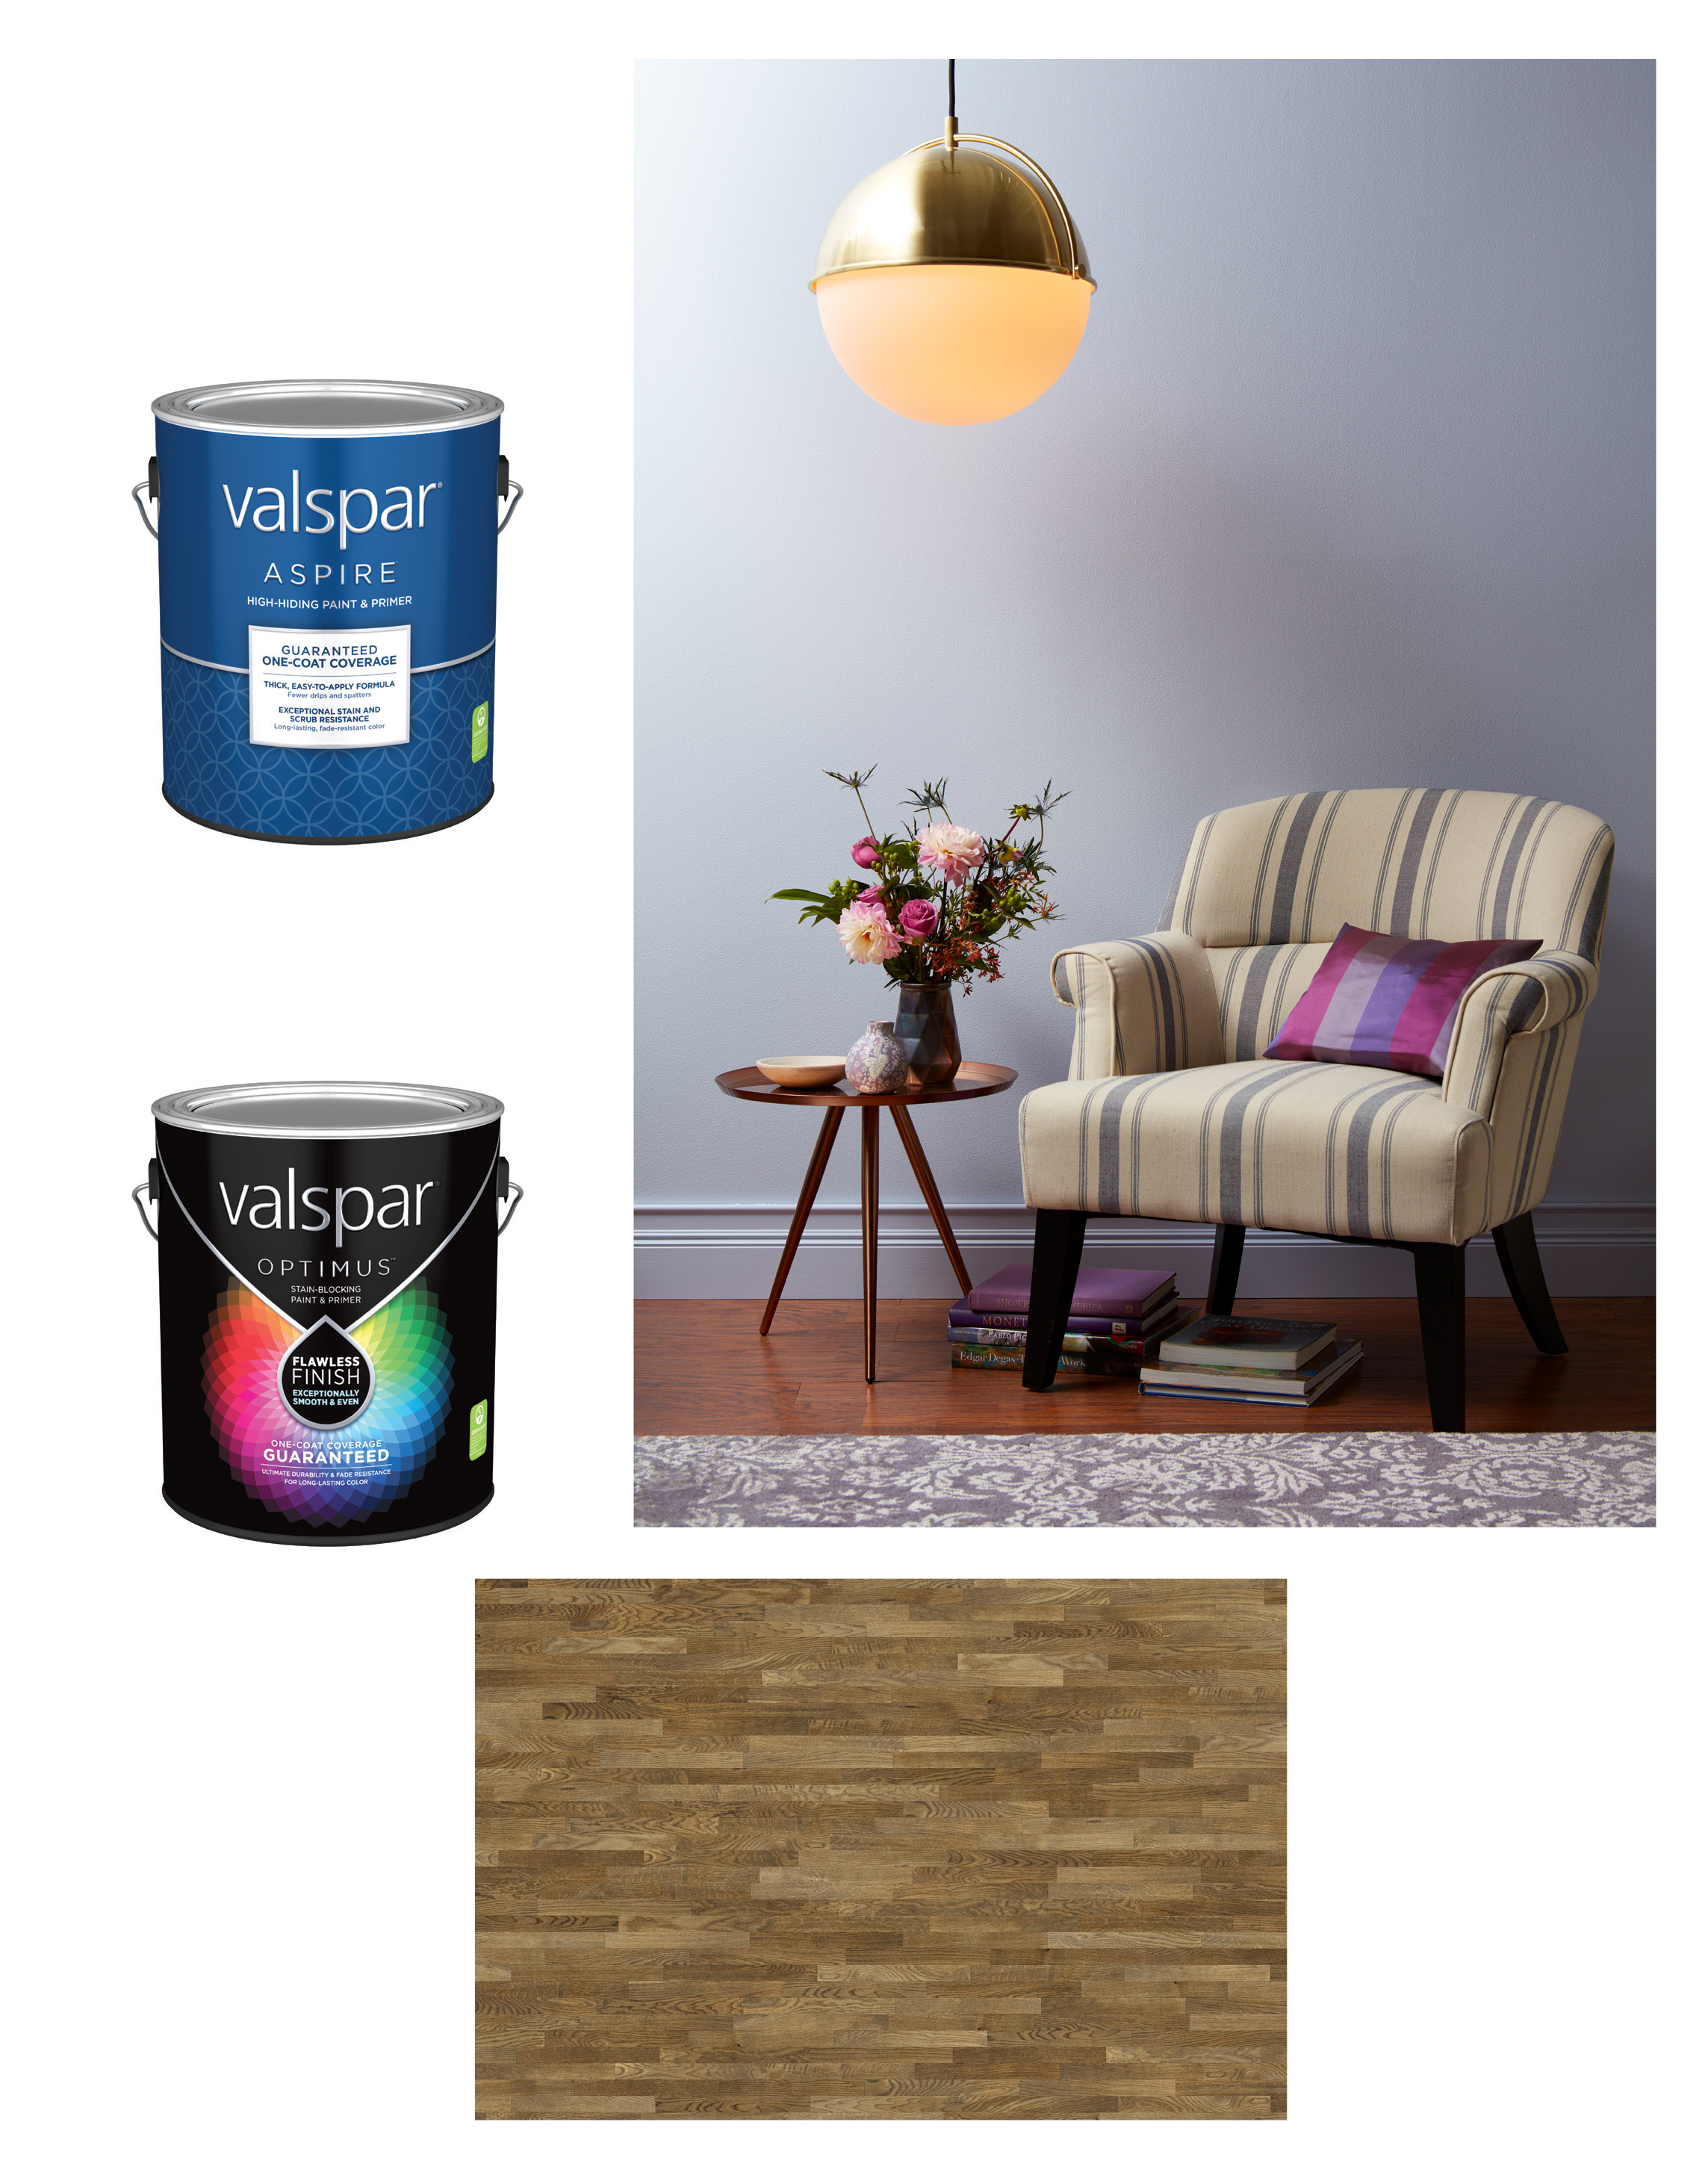 Original Image Assets - Here are the image assets that I used to compose and retouch the ad above. Two CGI product renderings, the original photo of the interior, and a piece of stock art for the flooring.